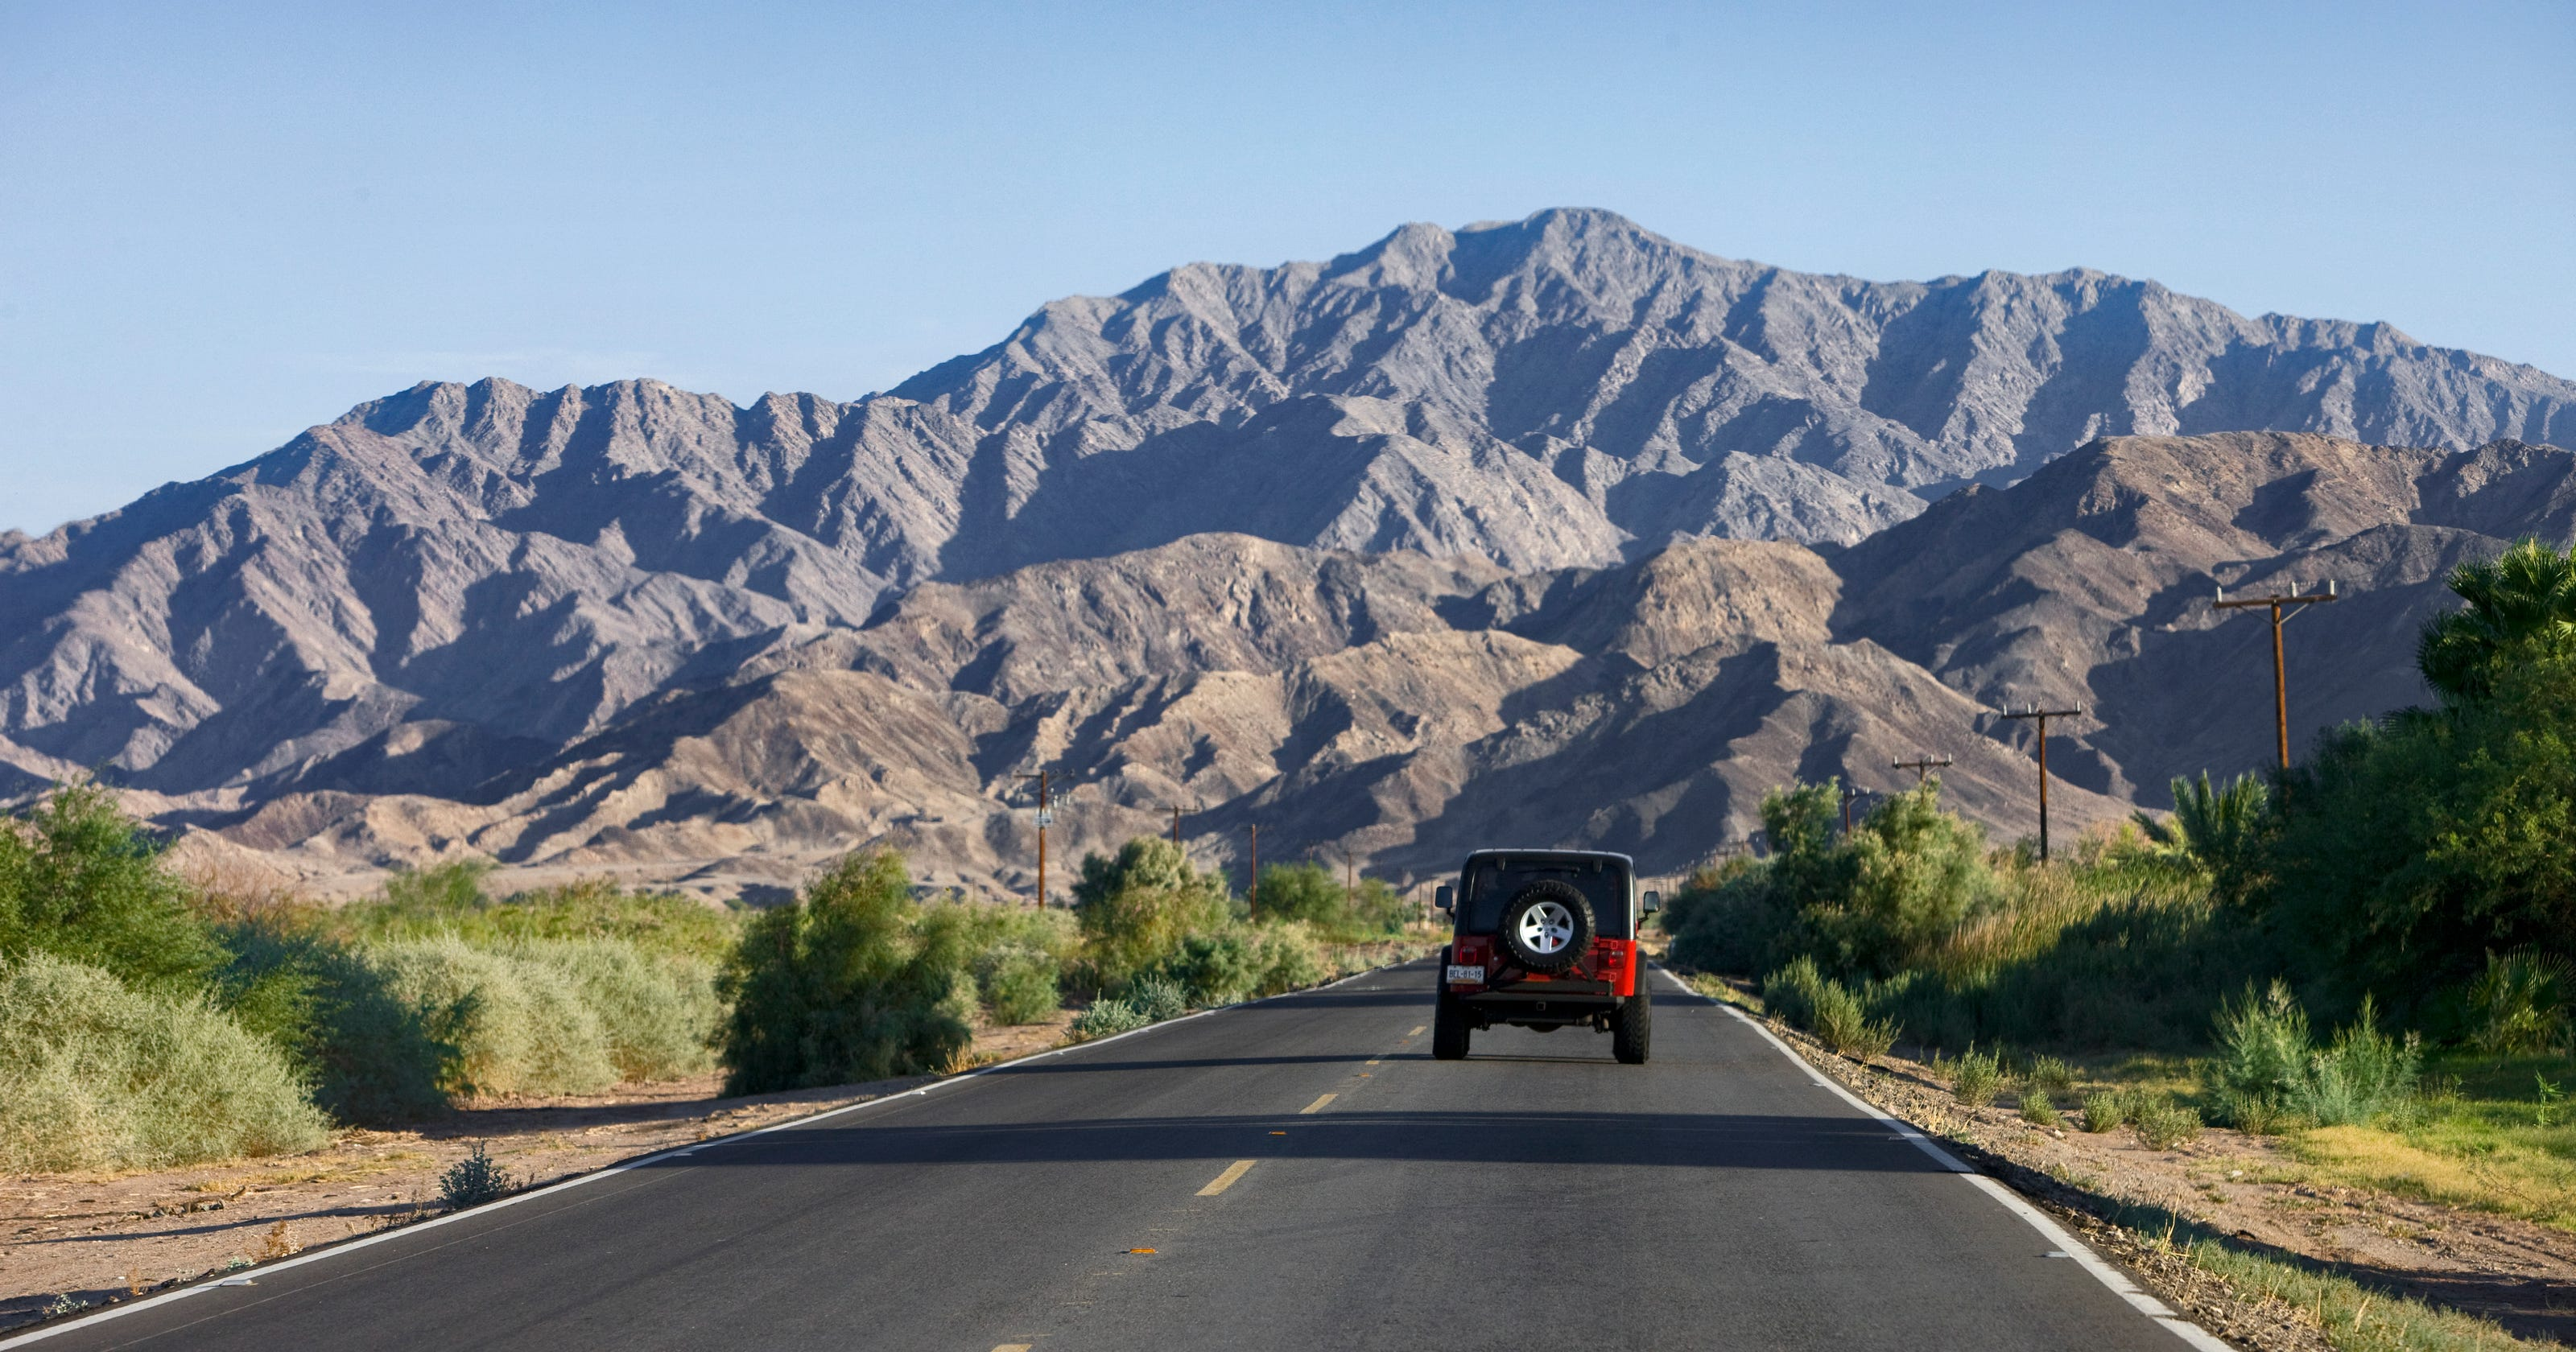 Driving in Mexico: What to know before you go